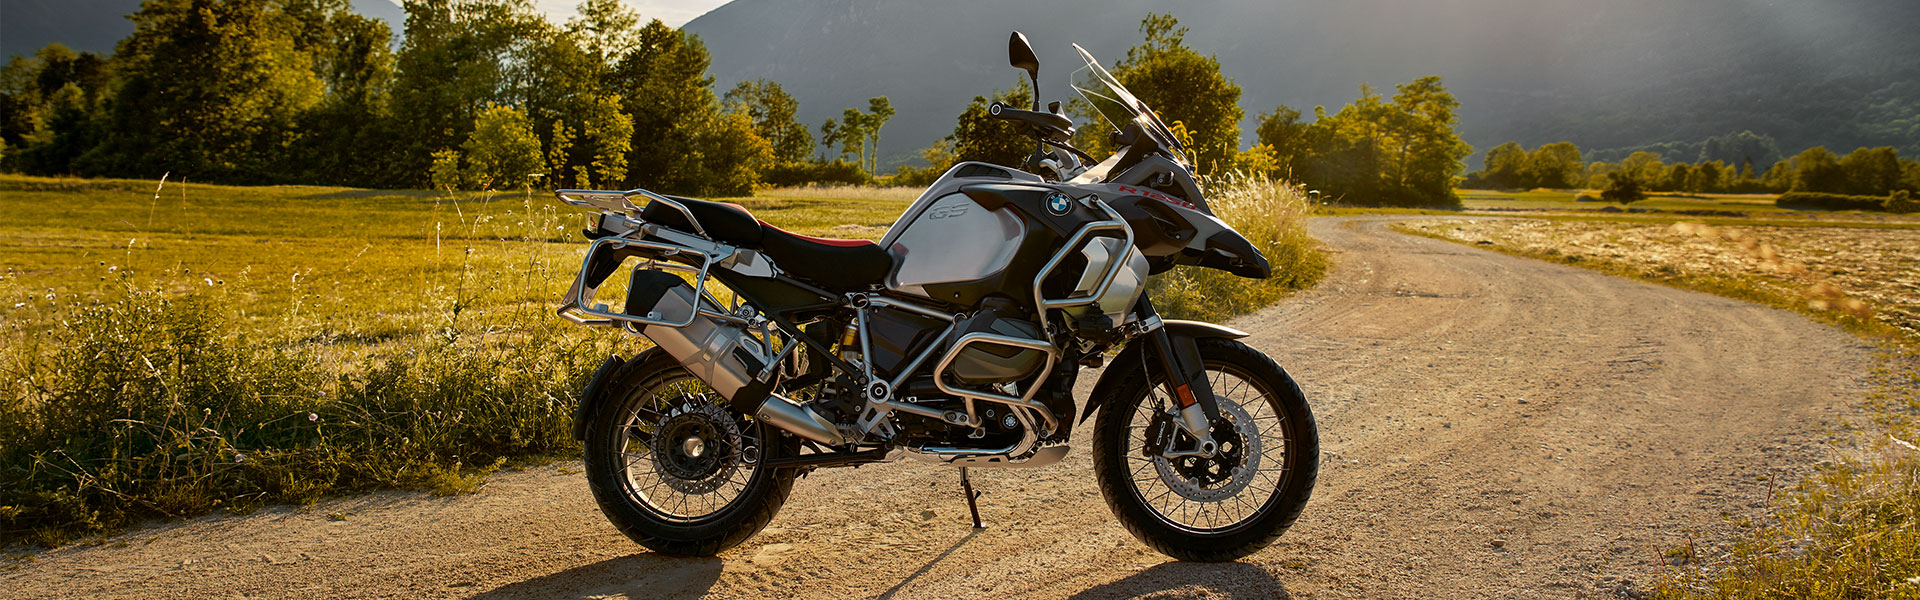 R 1250 GS Adventure TE